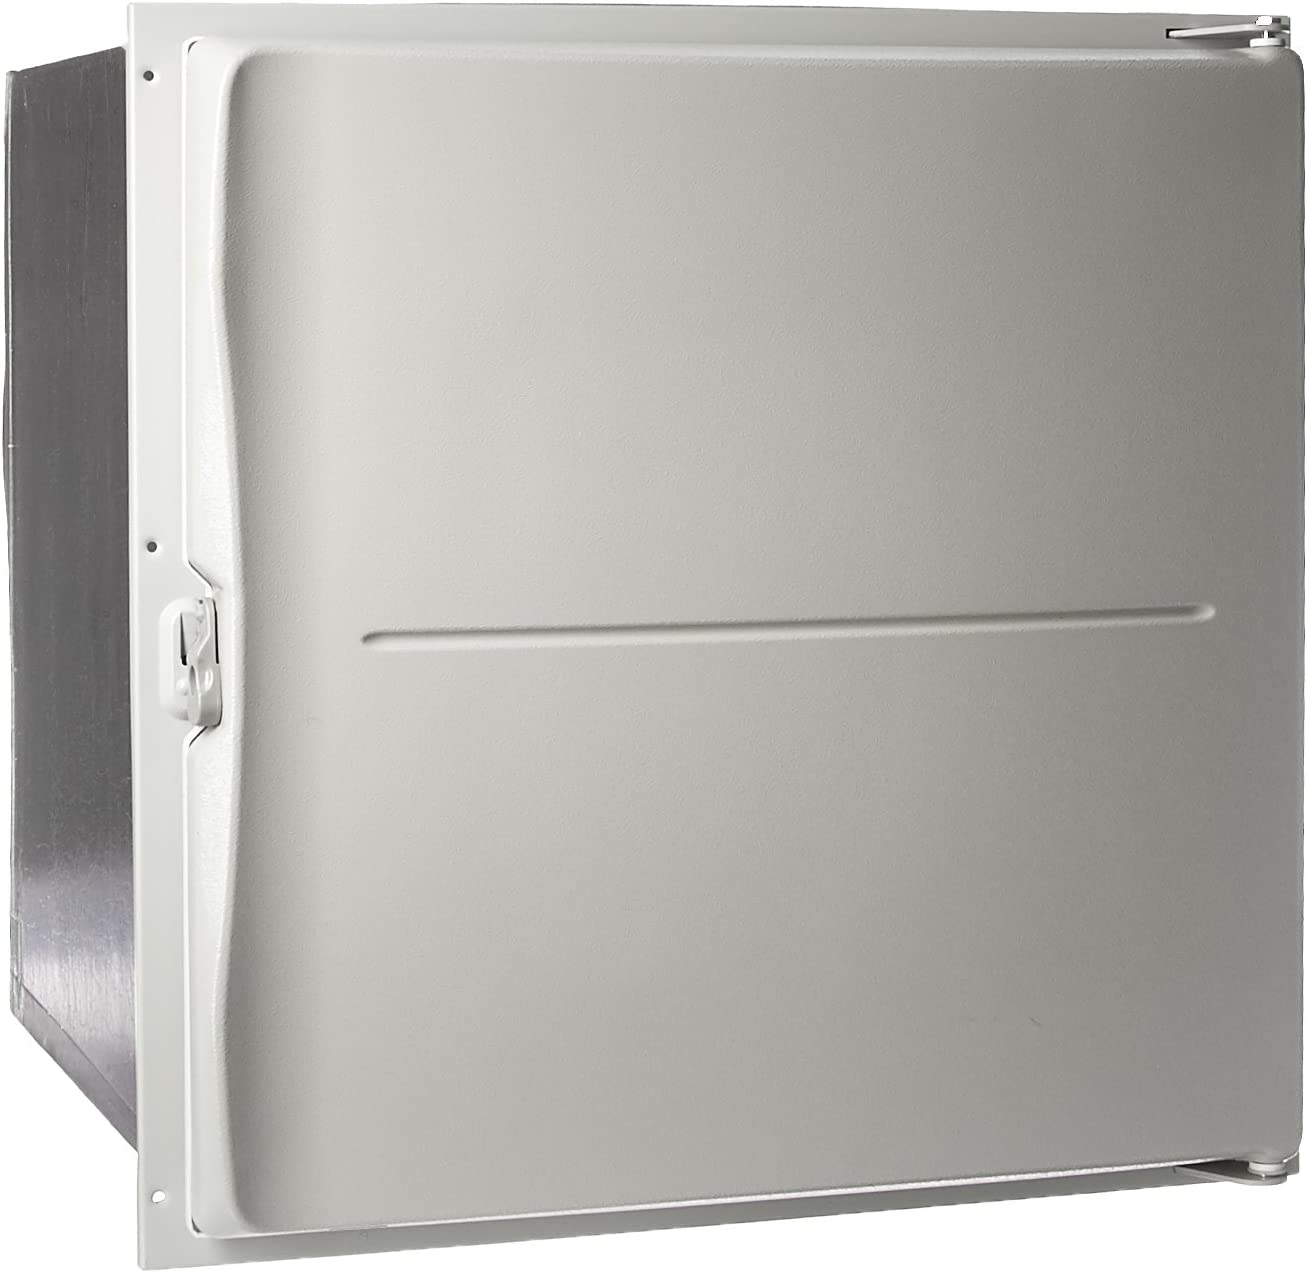 B0002F683Q Norcold N260.3R RV Refrigerator-2.4 cu. ft. -AC/DC/LP-Right Hand Swing 71aOwPv3RtL.SL1330_